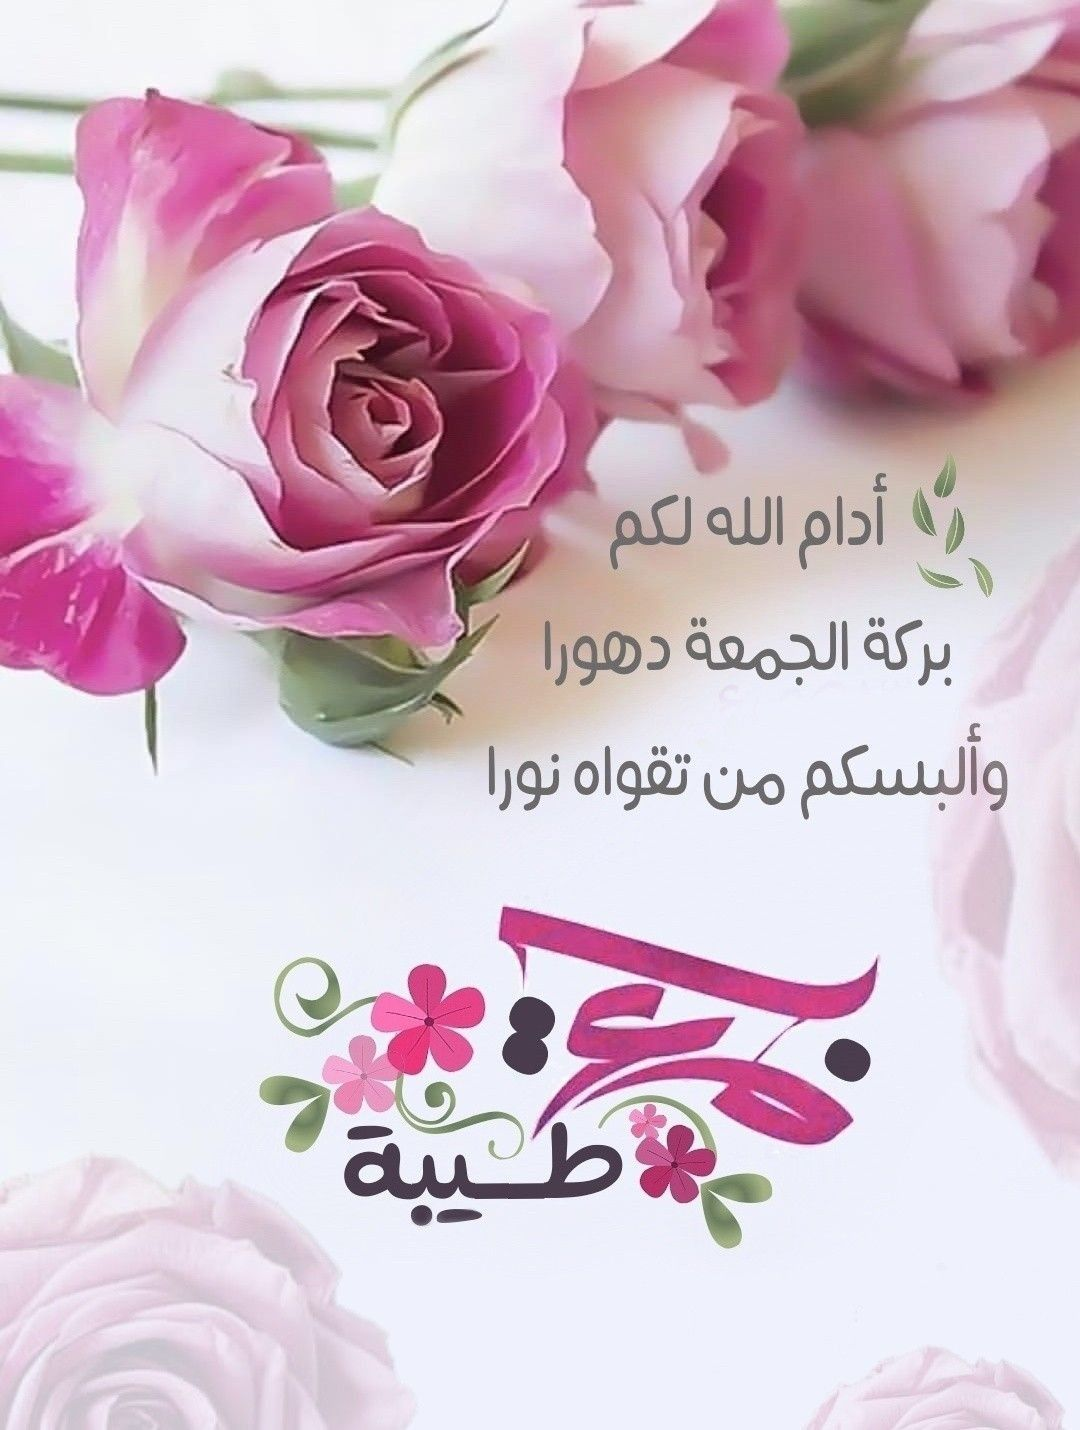 صور دعاء يوم الجمعة 2020 Floral Wallpaper Phone Beautiful Morning Messages Good Prayers